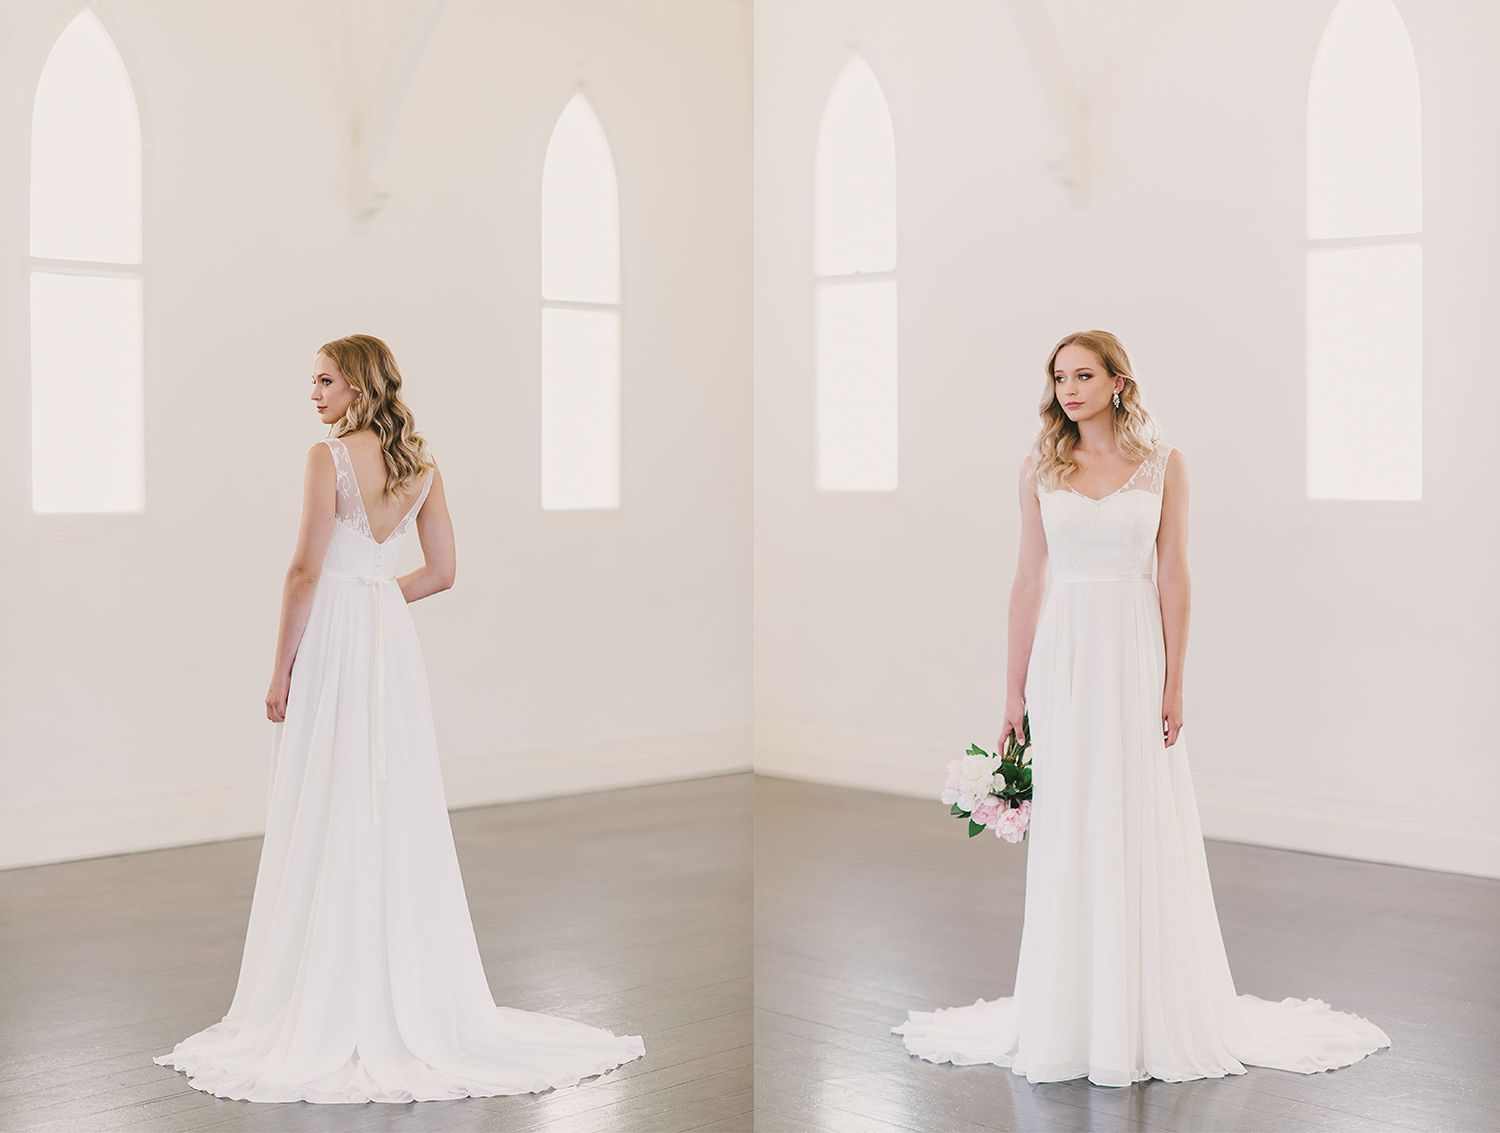 Dresses to wear at a wedding  Kiara u The Wendy Makin Experience  Wedding dresses  Pinterest